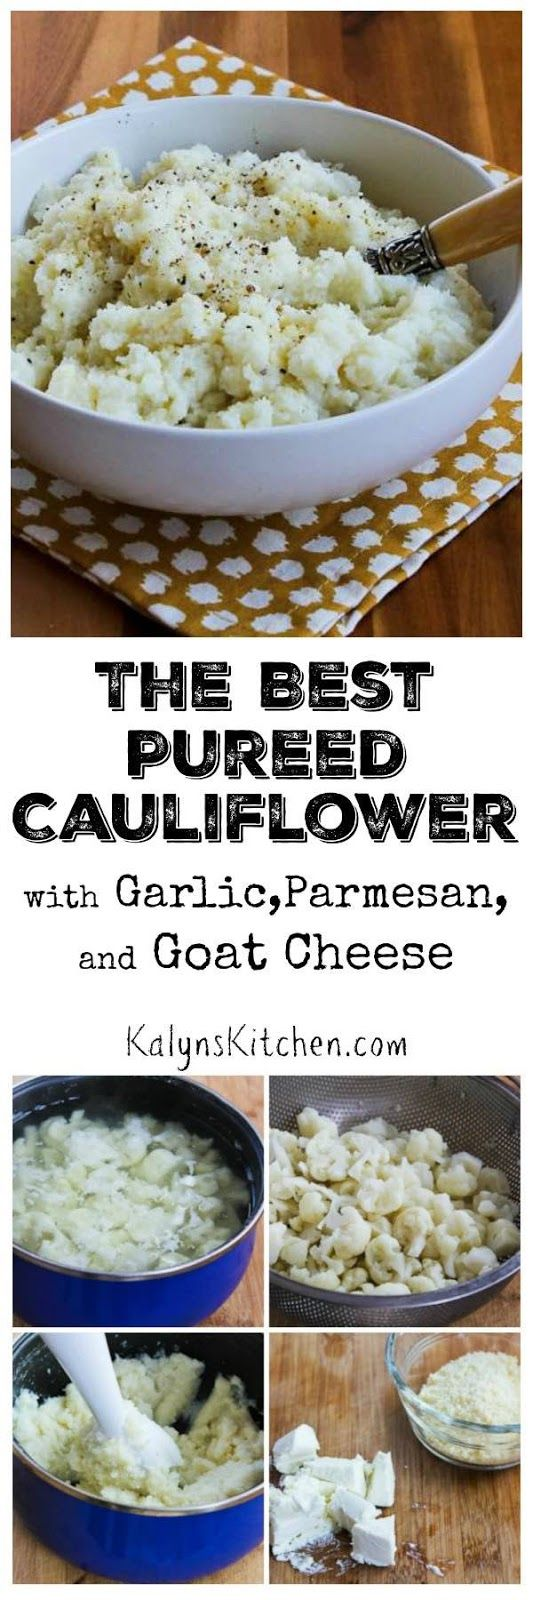 There are a lot of recipes for mashed cauliflower, but this recipe for The Best Pureed Cauliflower with Garlic, Parmesan, and Goat Cheese is the one I make over and over.  (Plus this post has 10 More Yummy Cauliflower Ideas!) [found on KalynsKitchen.com]